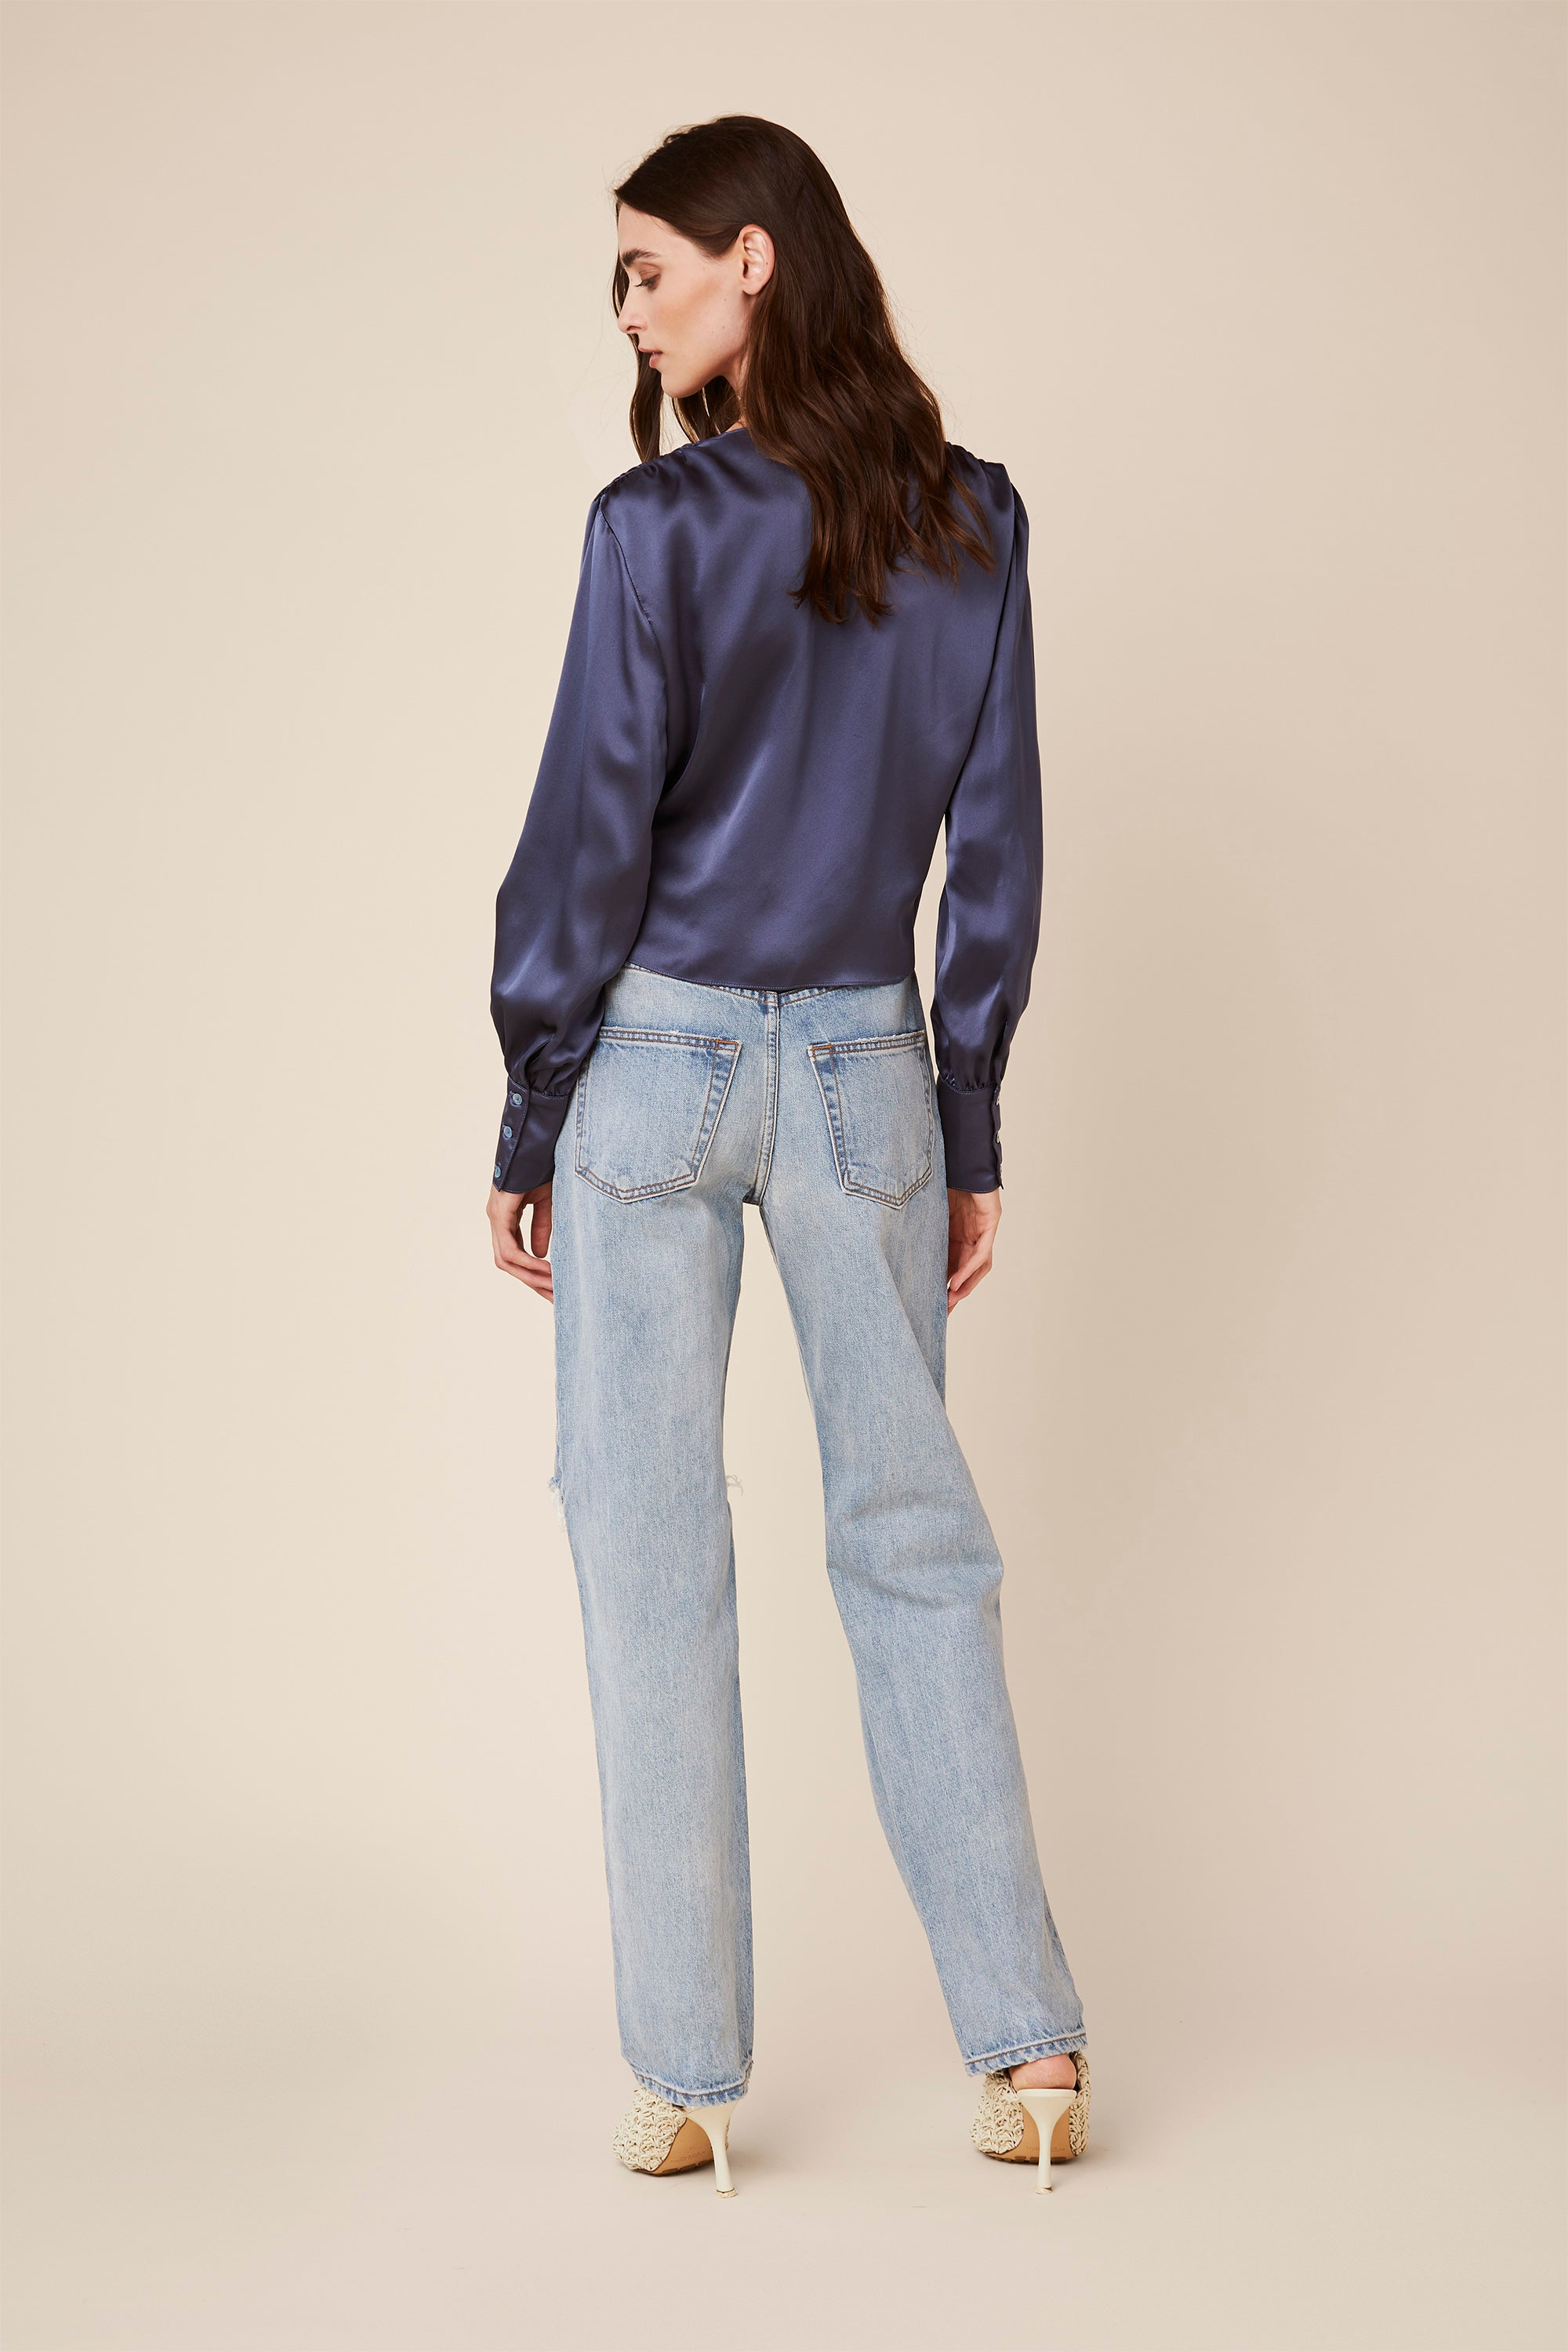 CHANCE V-NECK SILK BLOUSE | BLUE DENIM